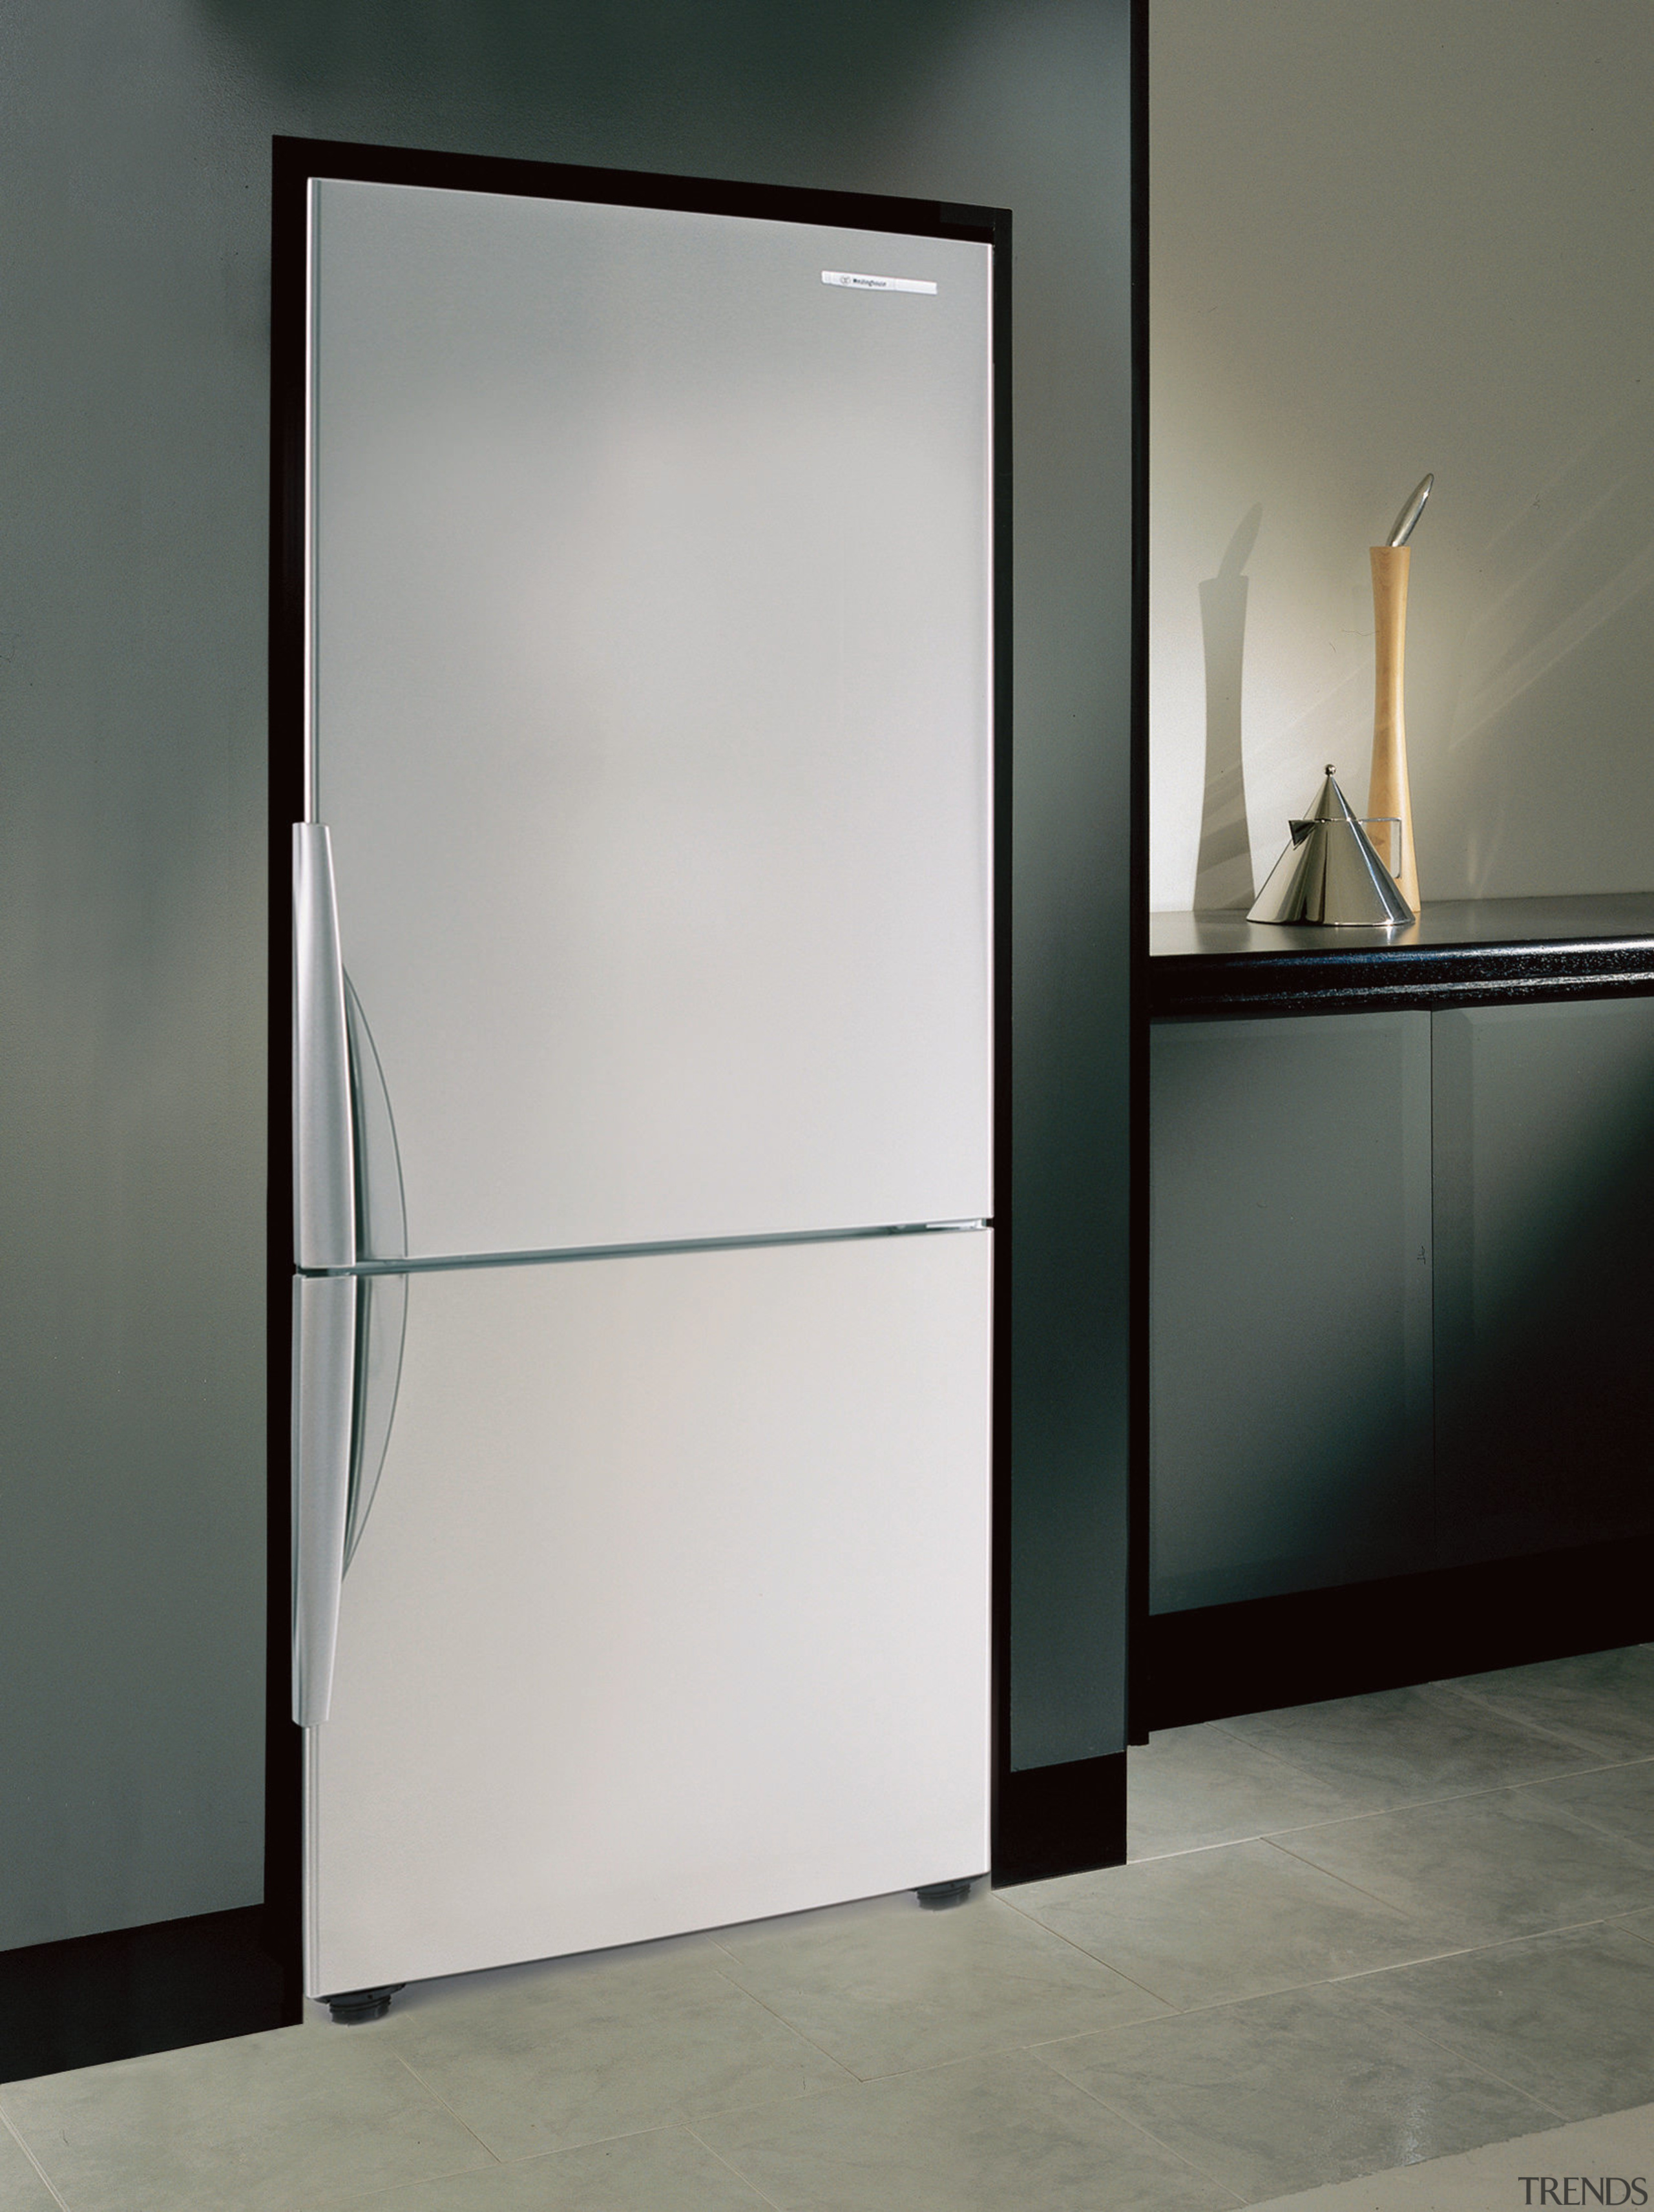 A view of this kitchen featuring the latest door, glass, product design, gray